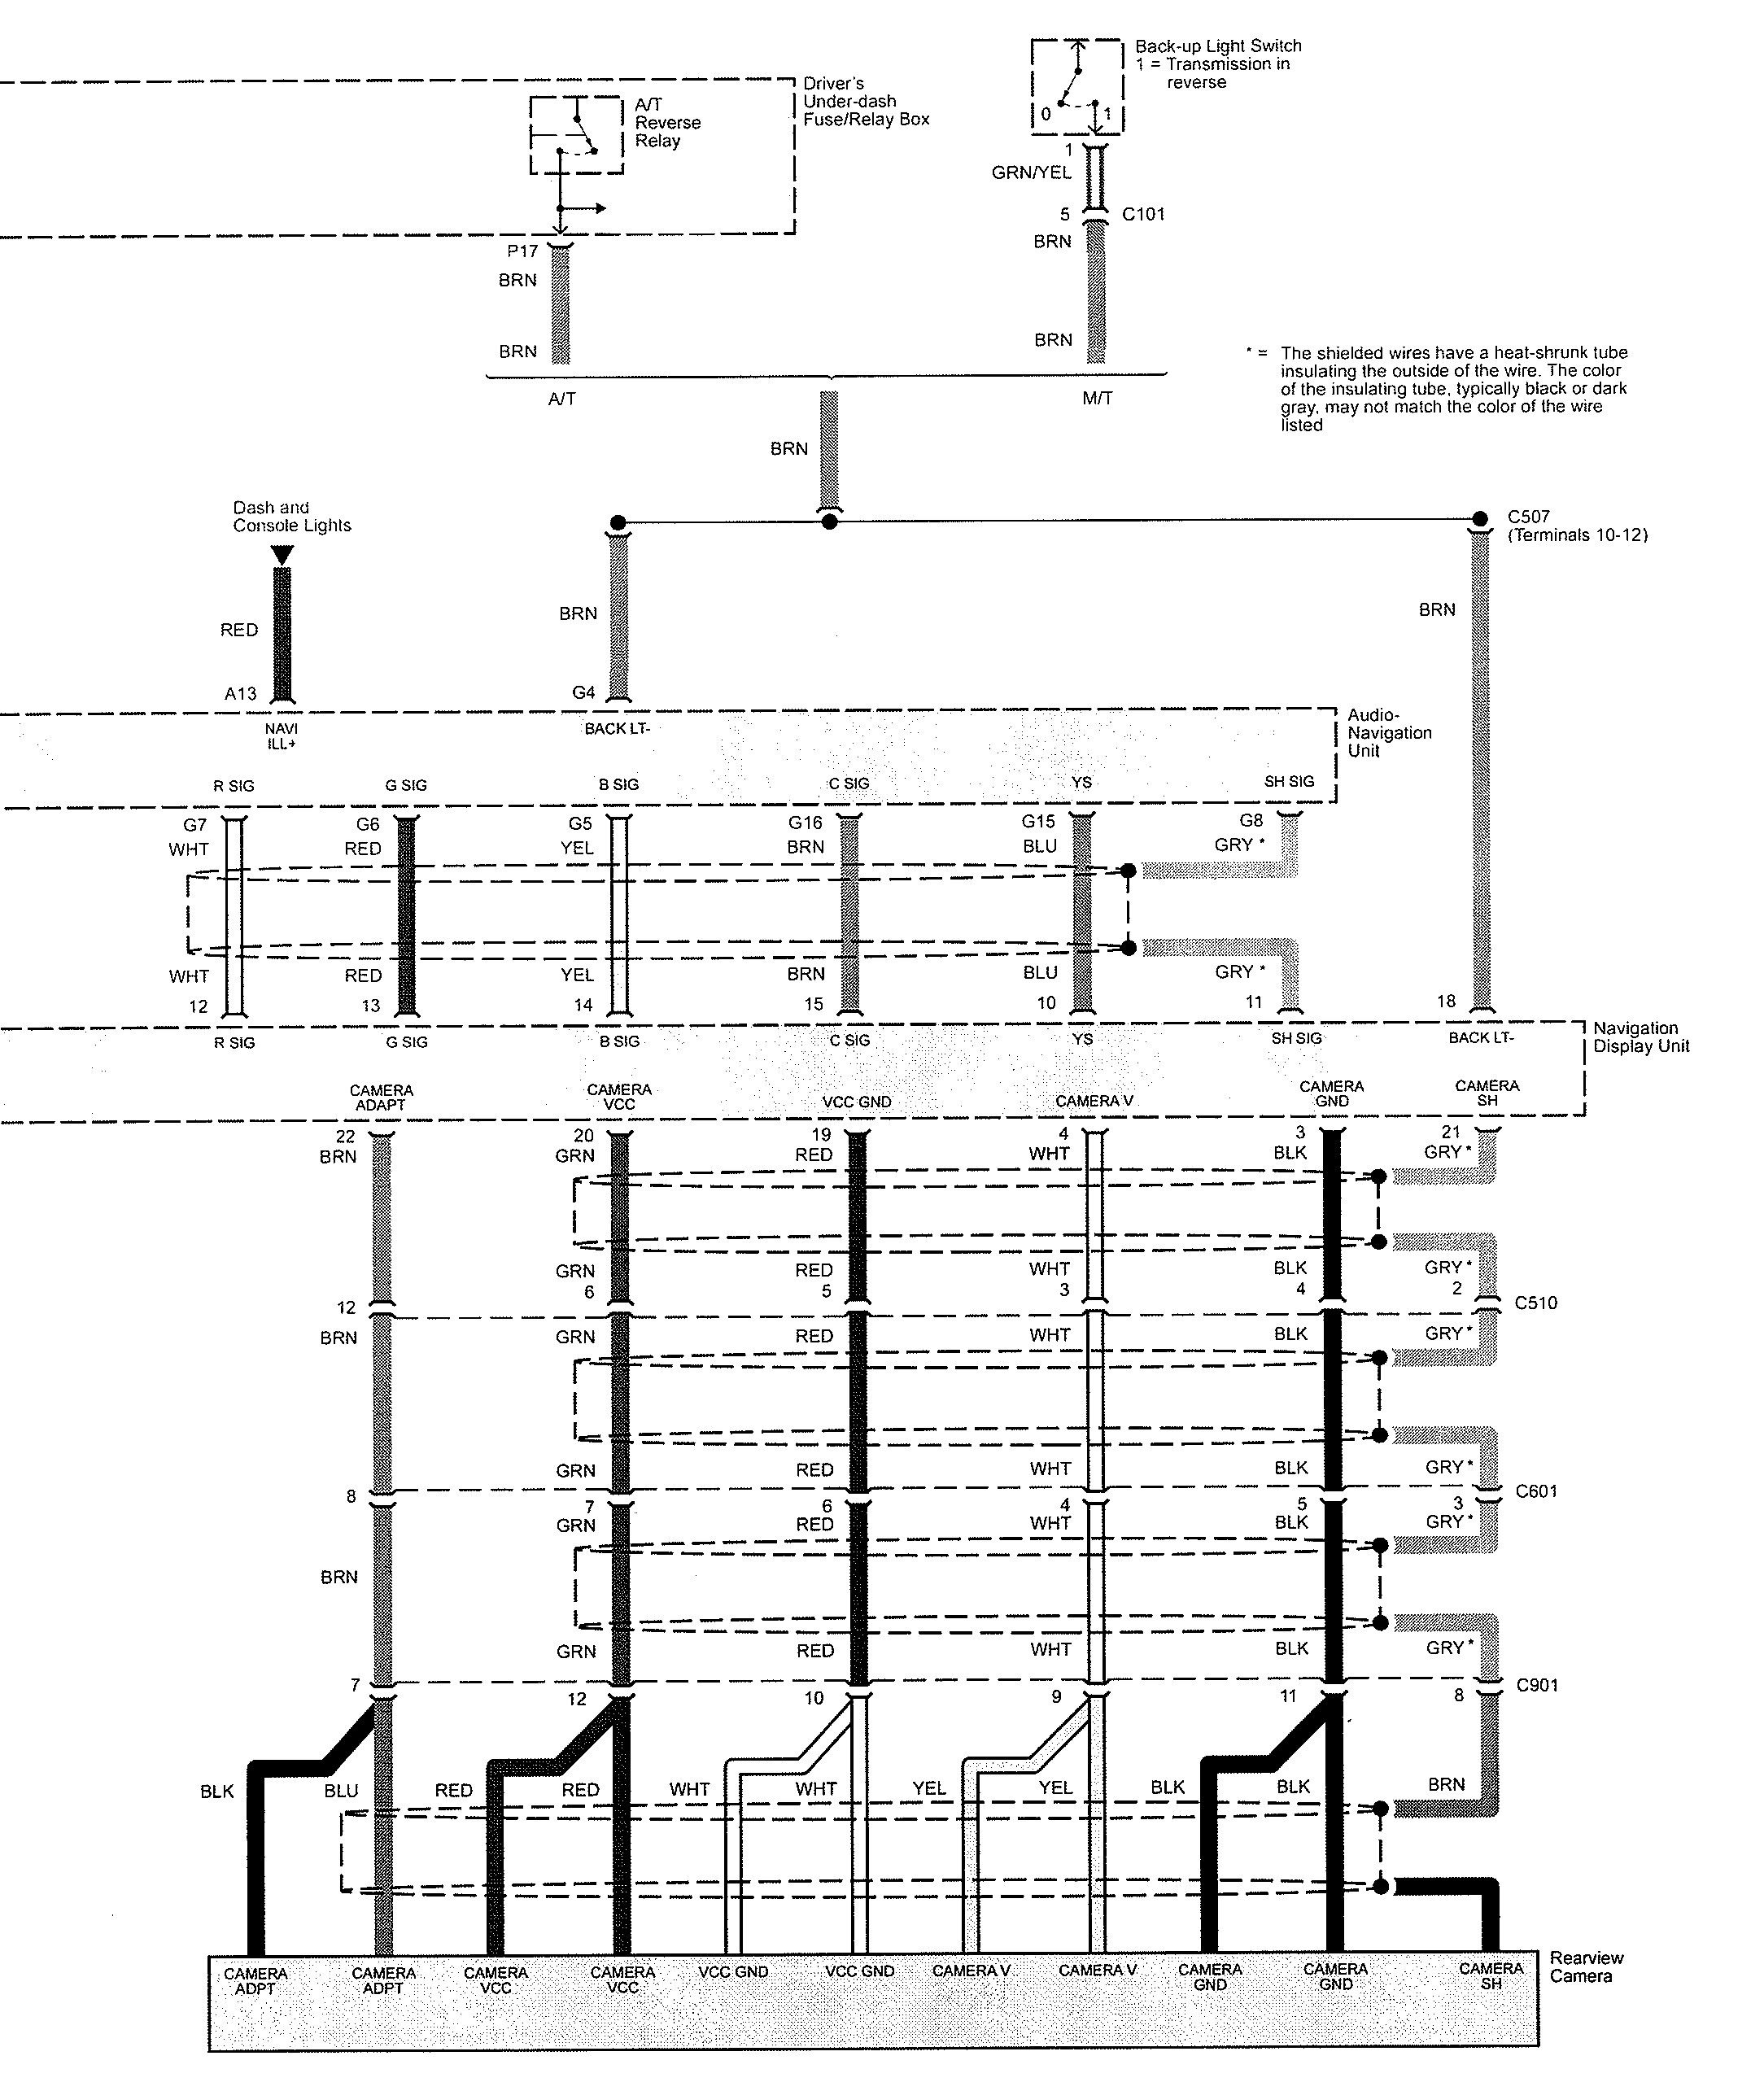 2002 buick century wiring diagram   33 wiring diagram